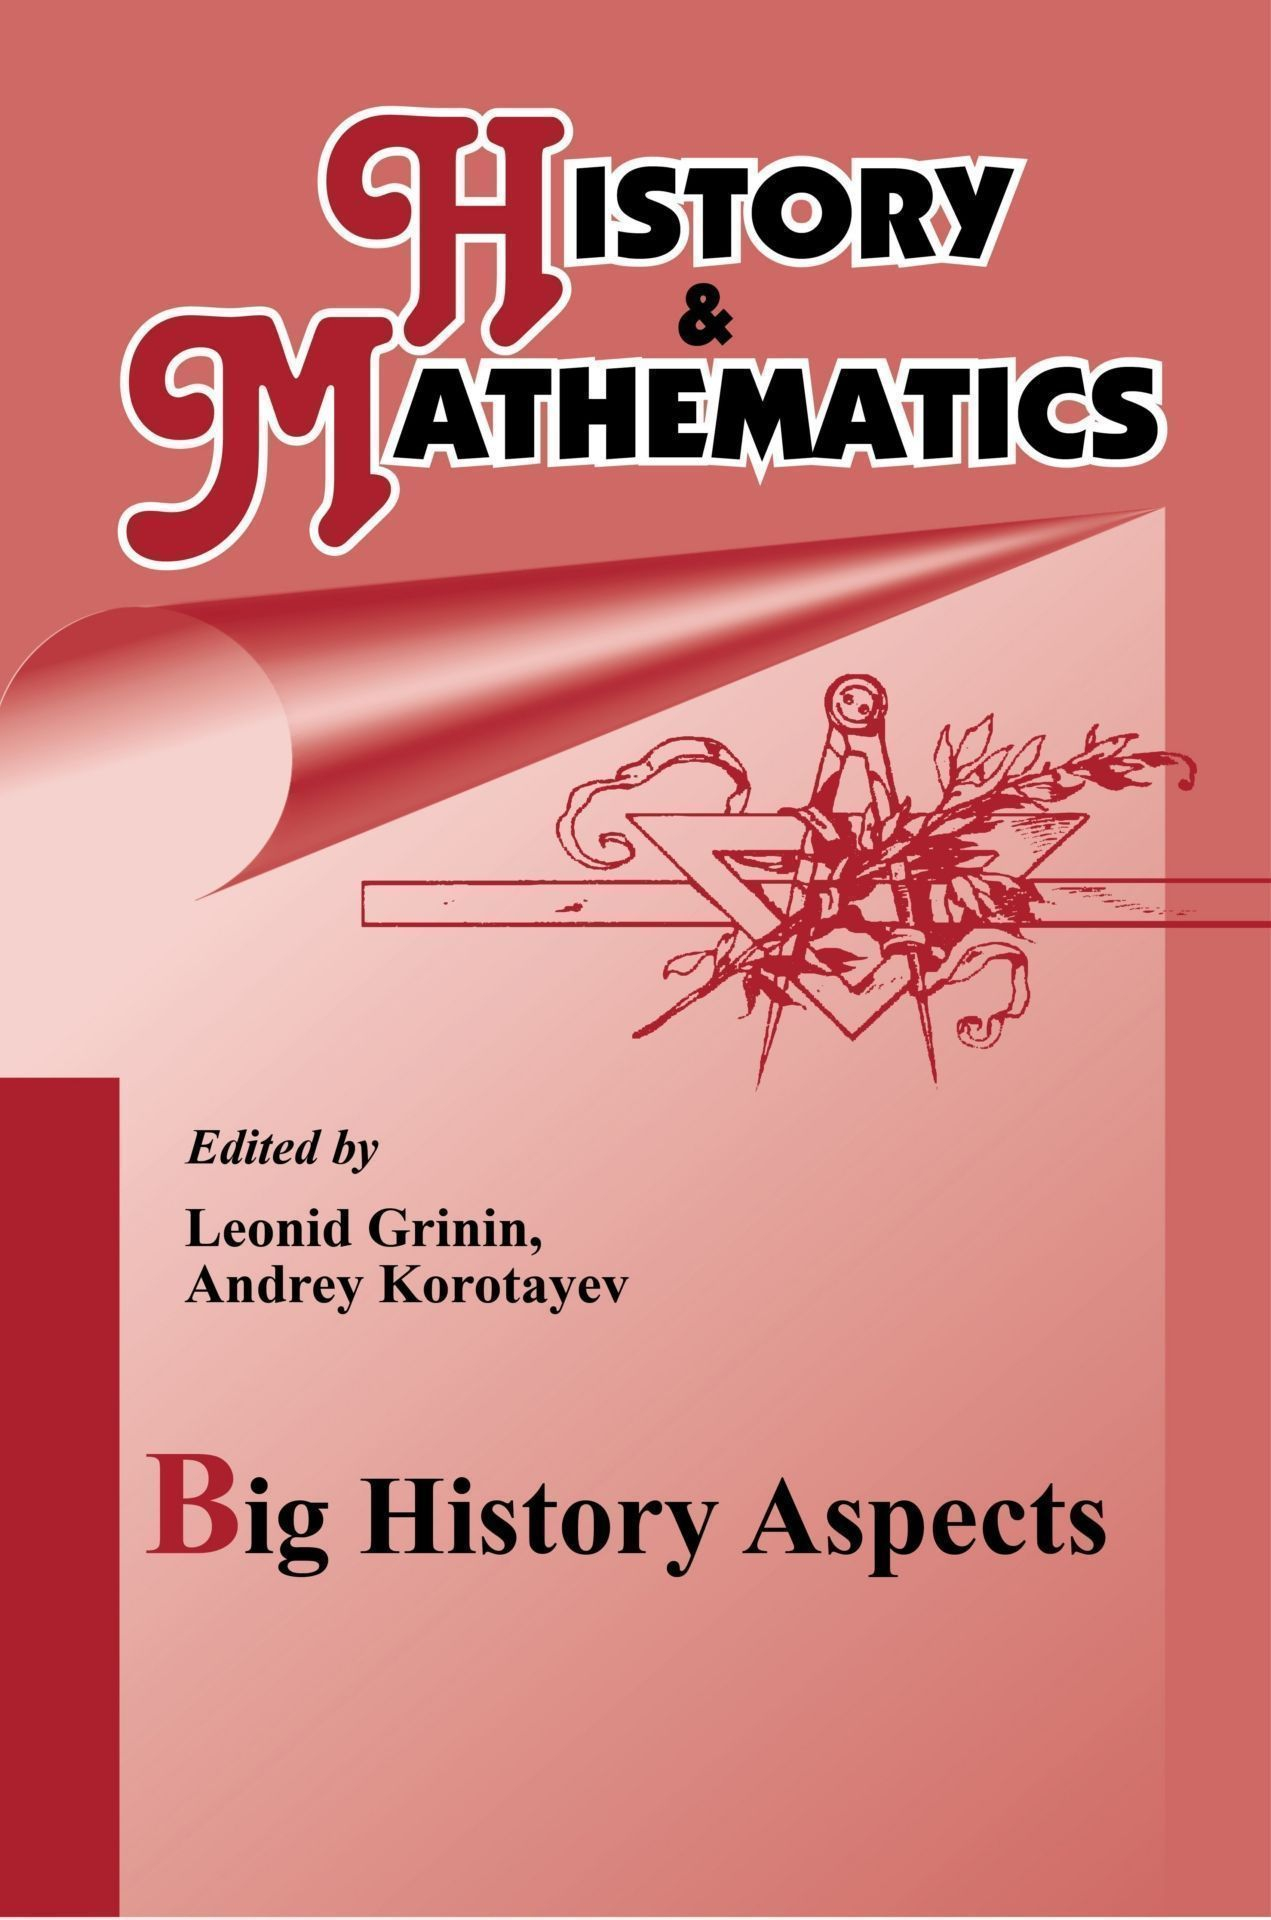 History & Mathematics: Big History Aspects